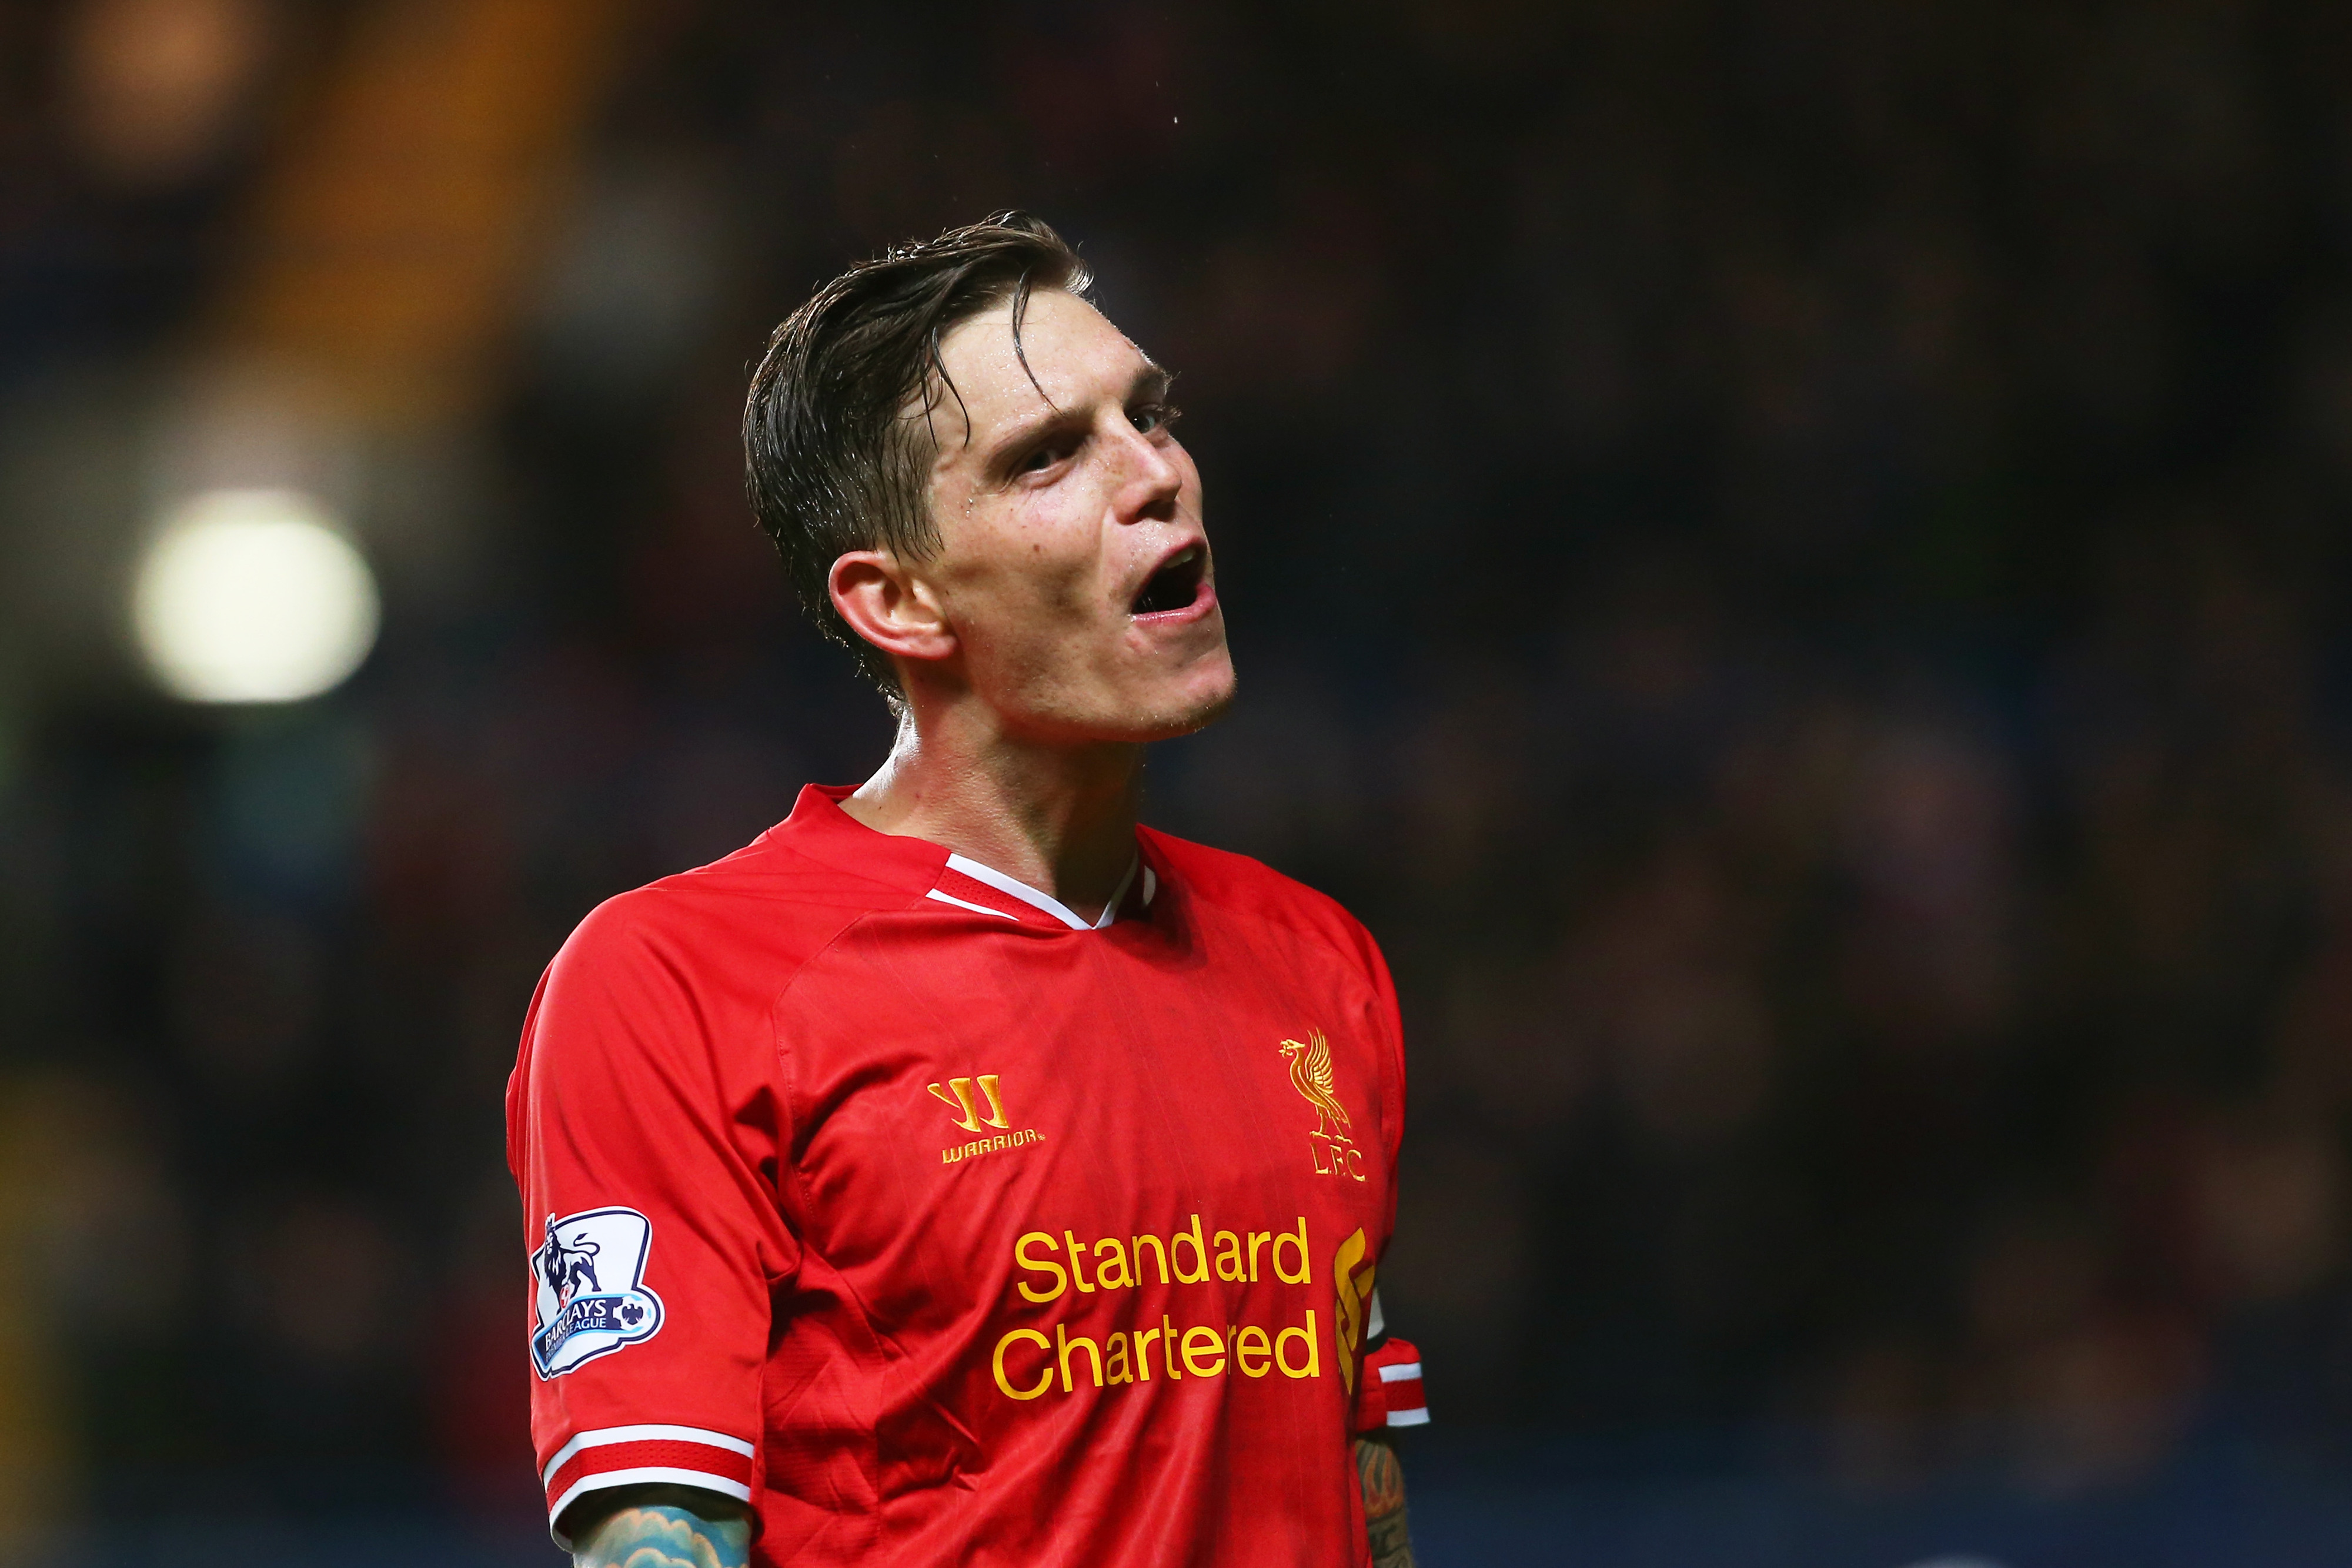 There are no photos in the database featuring both Agger and Sakho. Surprise!